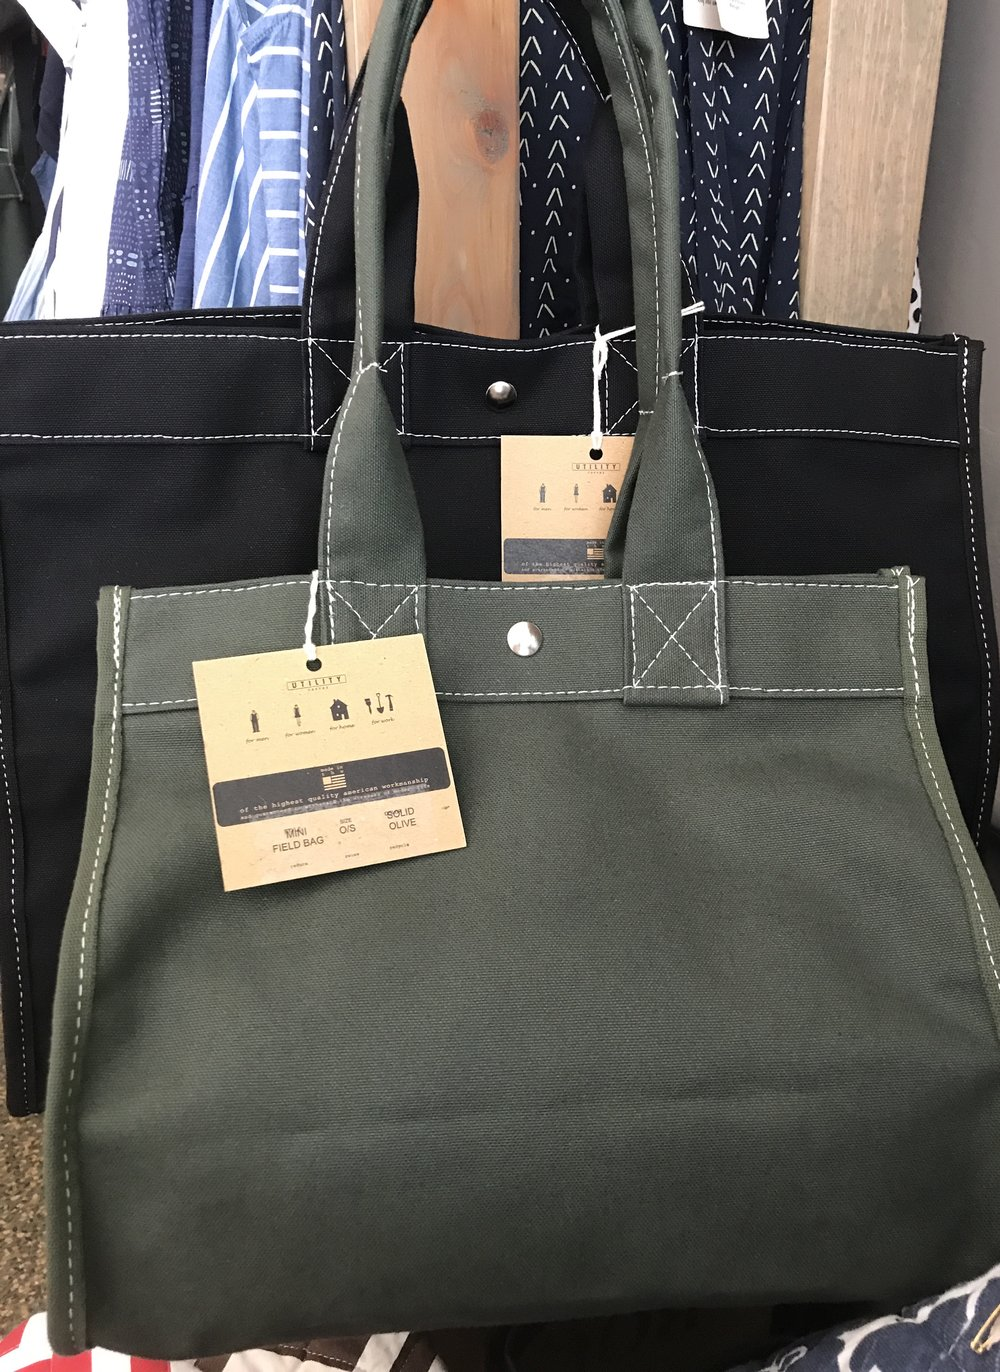 FullSizeRender_1 copy 2.jpg